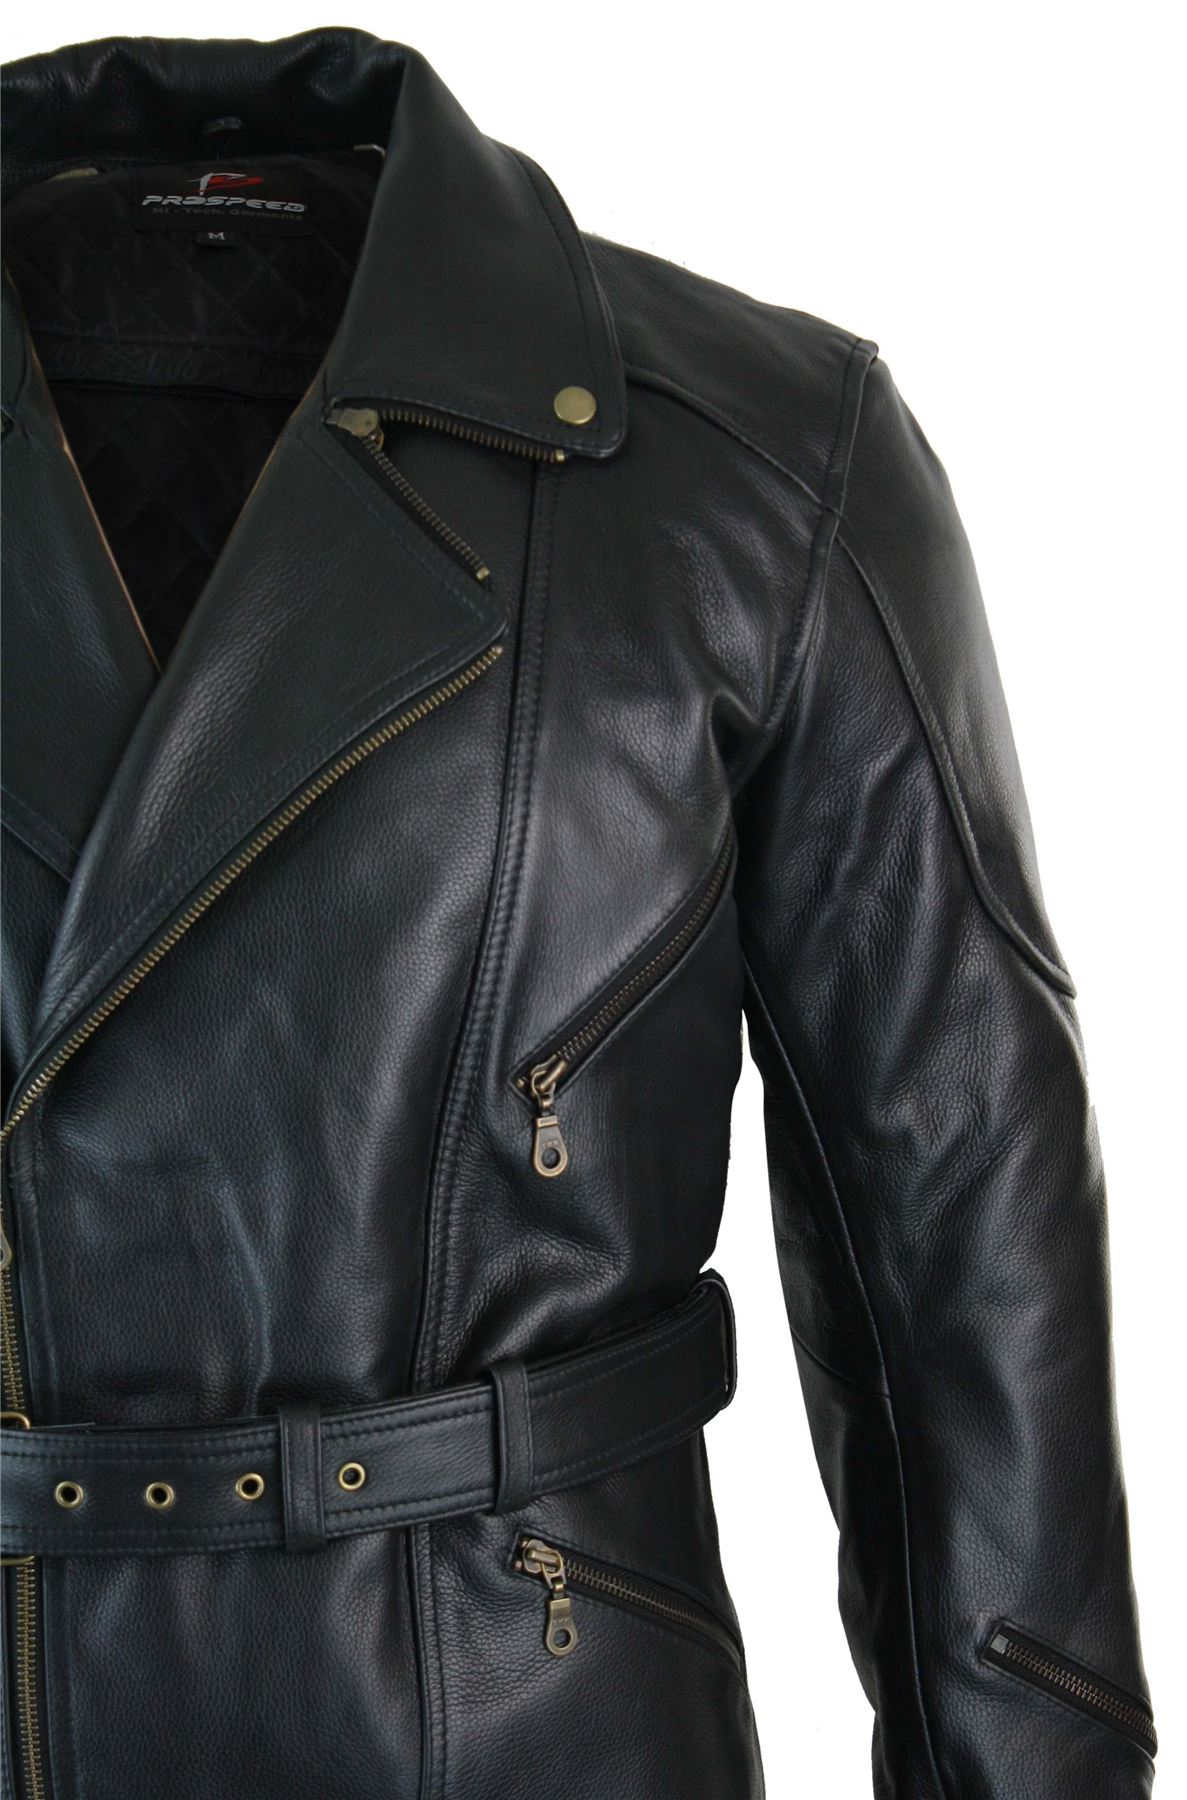 Mens long leather jackets